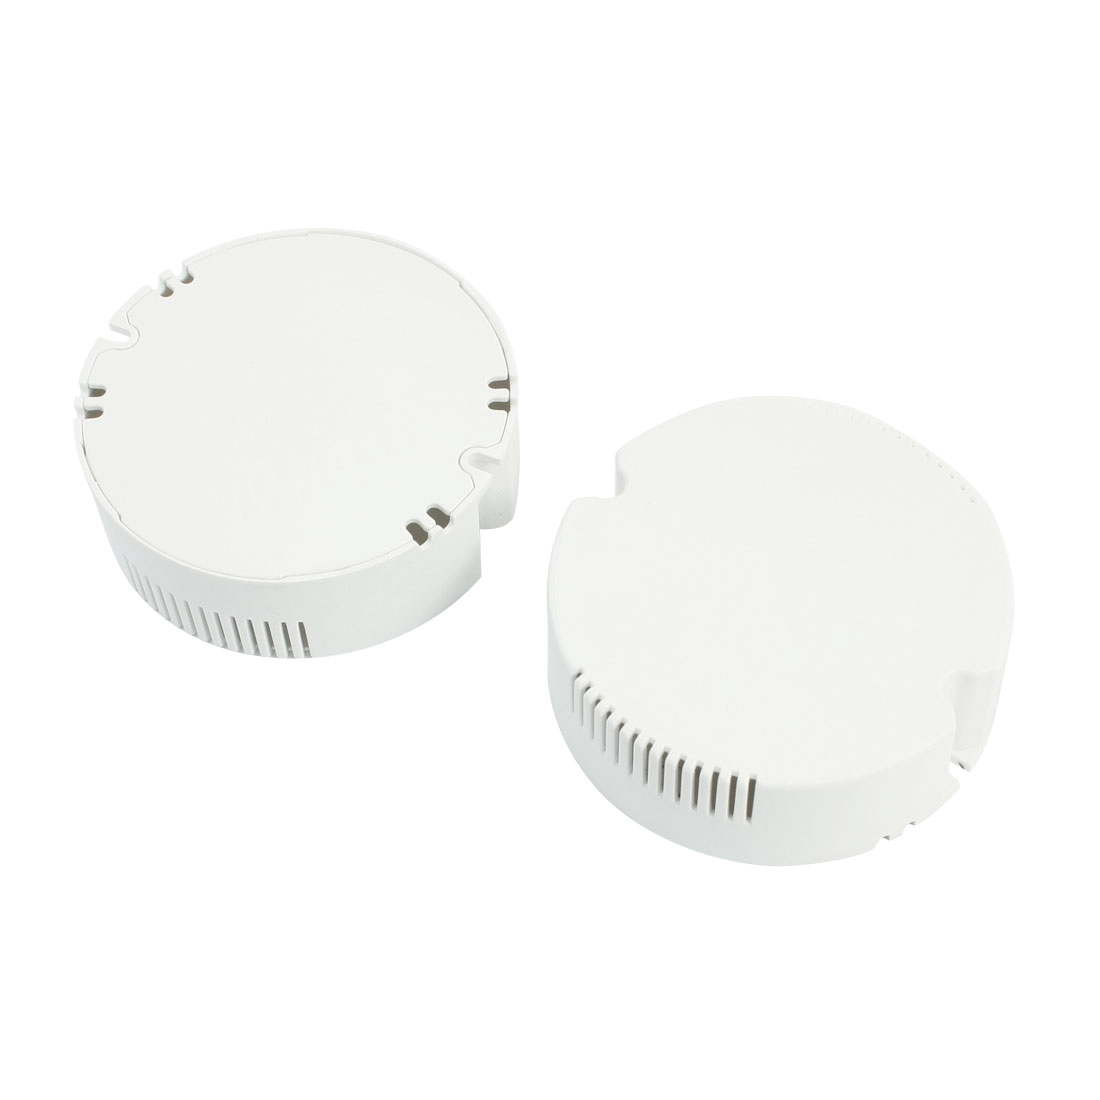 2pcs Sealed White Plastic Round Shape Housing Box 75 x 25mm for LED Power Supply Driver Ceiling Lights